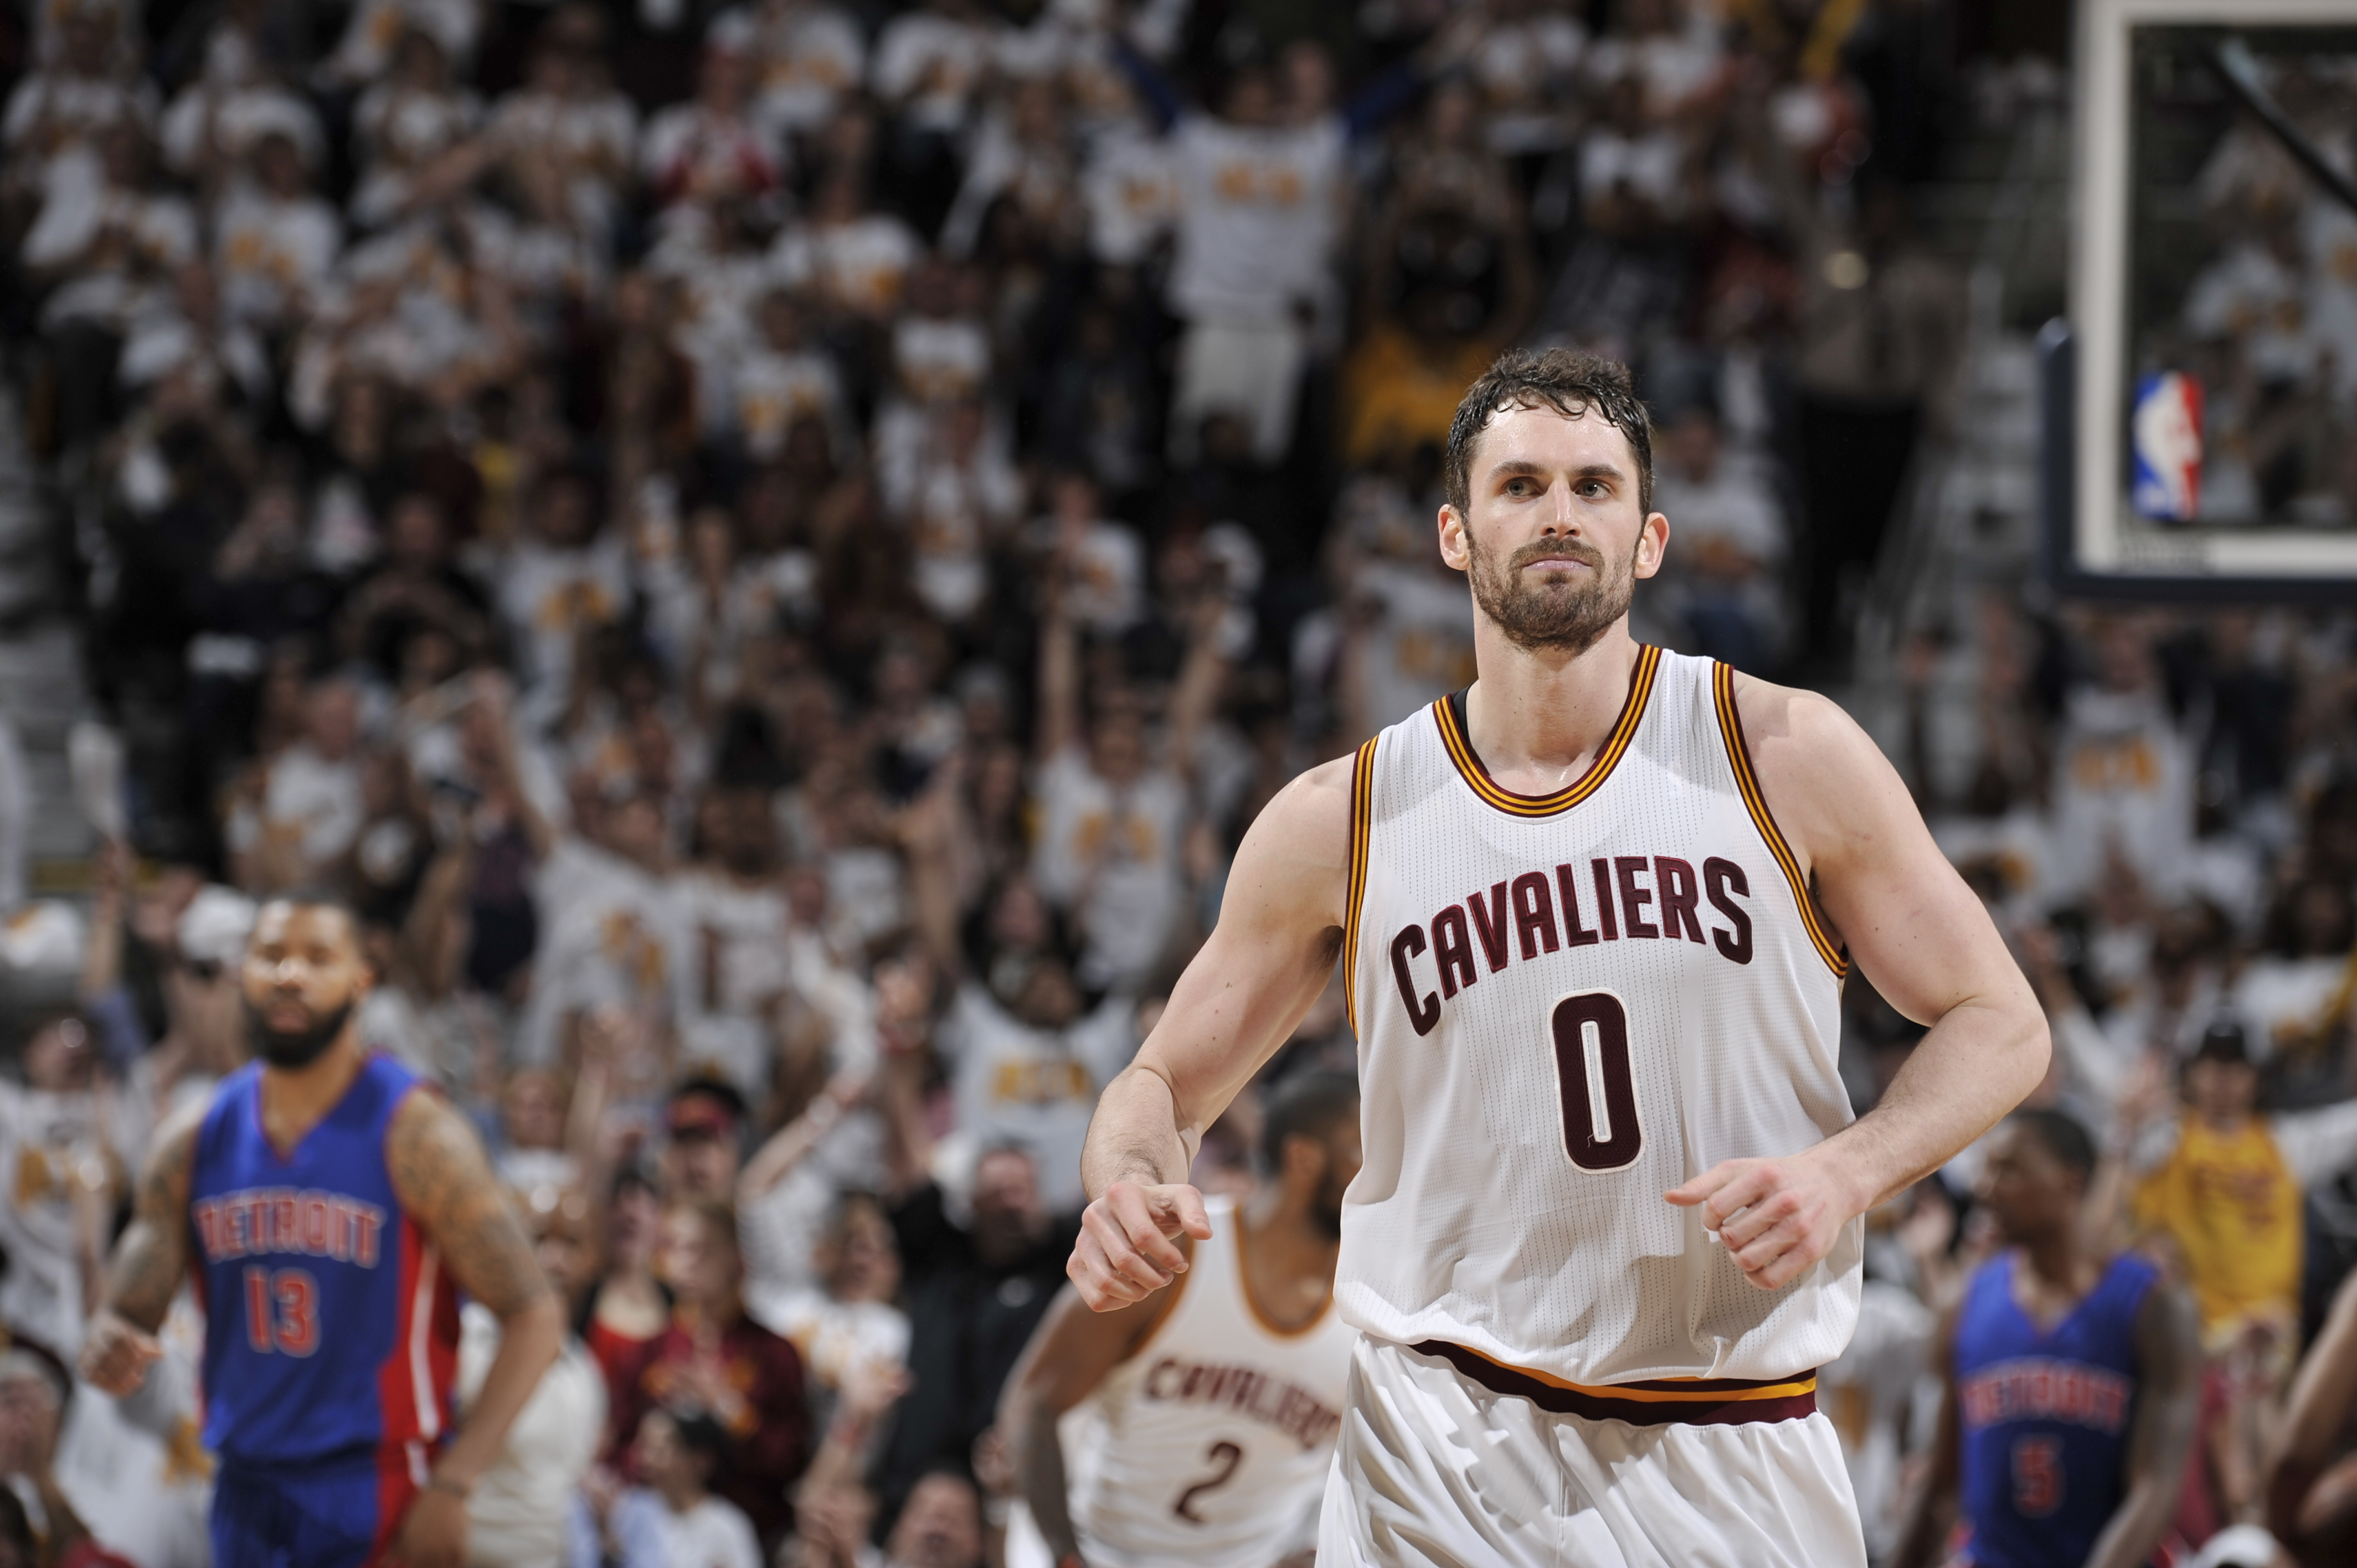 CLEVELAND, OH - APRIL 17: Kevin Love #0 of the Cleveland Cavaliers is seen during the game against the Detroit Pistons during Round One of the 2016 NBA Playoffs on April 17, 2016 at The Quicken Loans Arena in Cleveland, Ohio. (Photo by David Liam Kyle/NBA